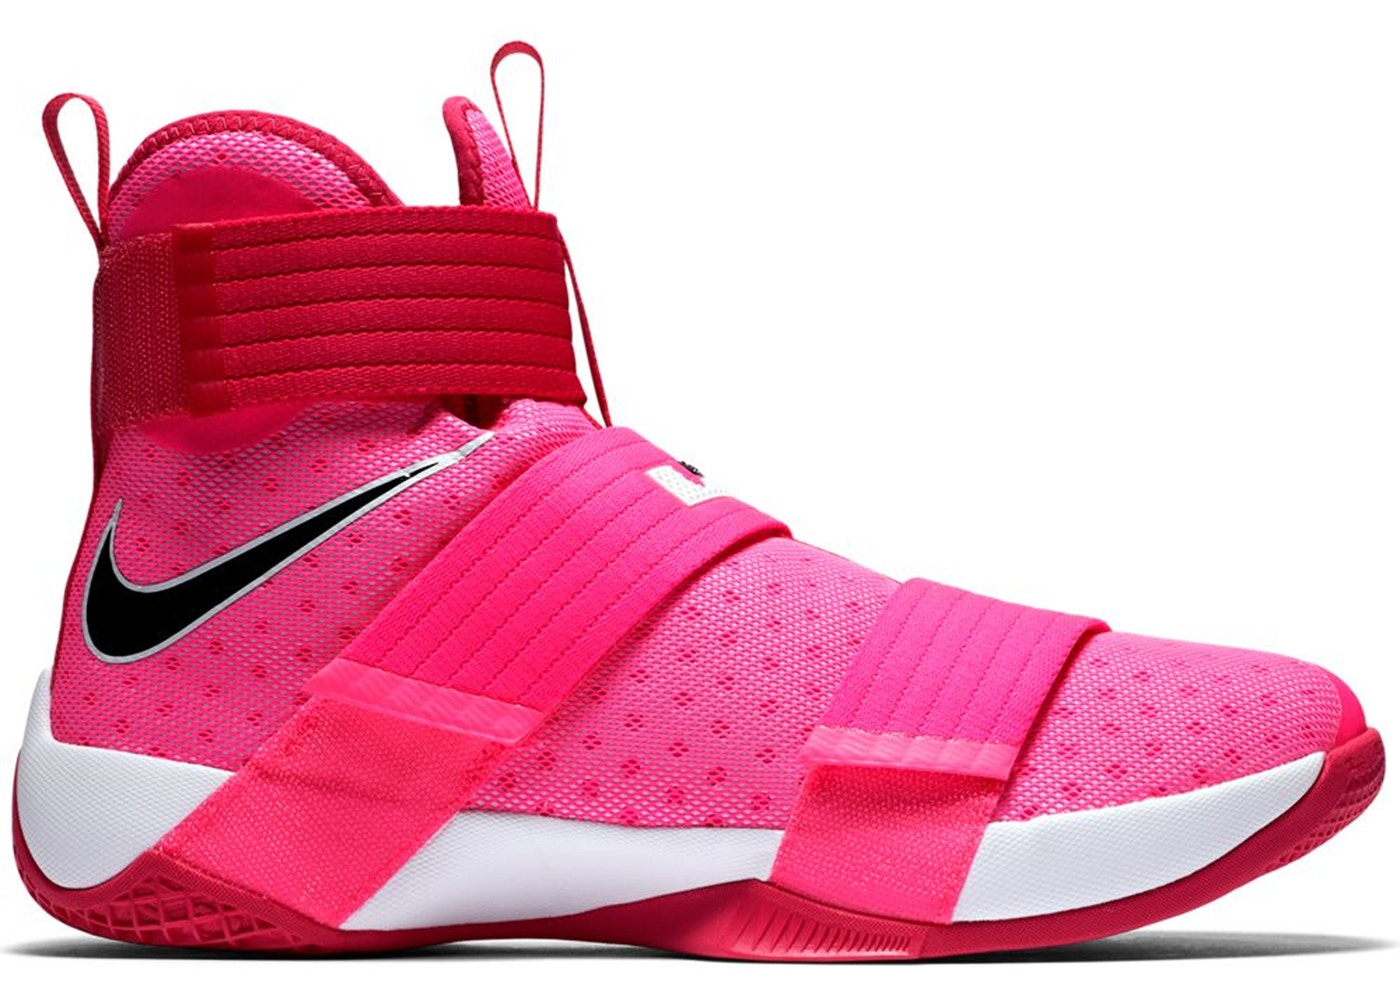 separation shoes 88ab8 92d1e LeBron Zoom Soldier 10 Think Pink - 844374-606